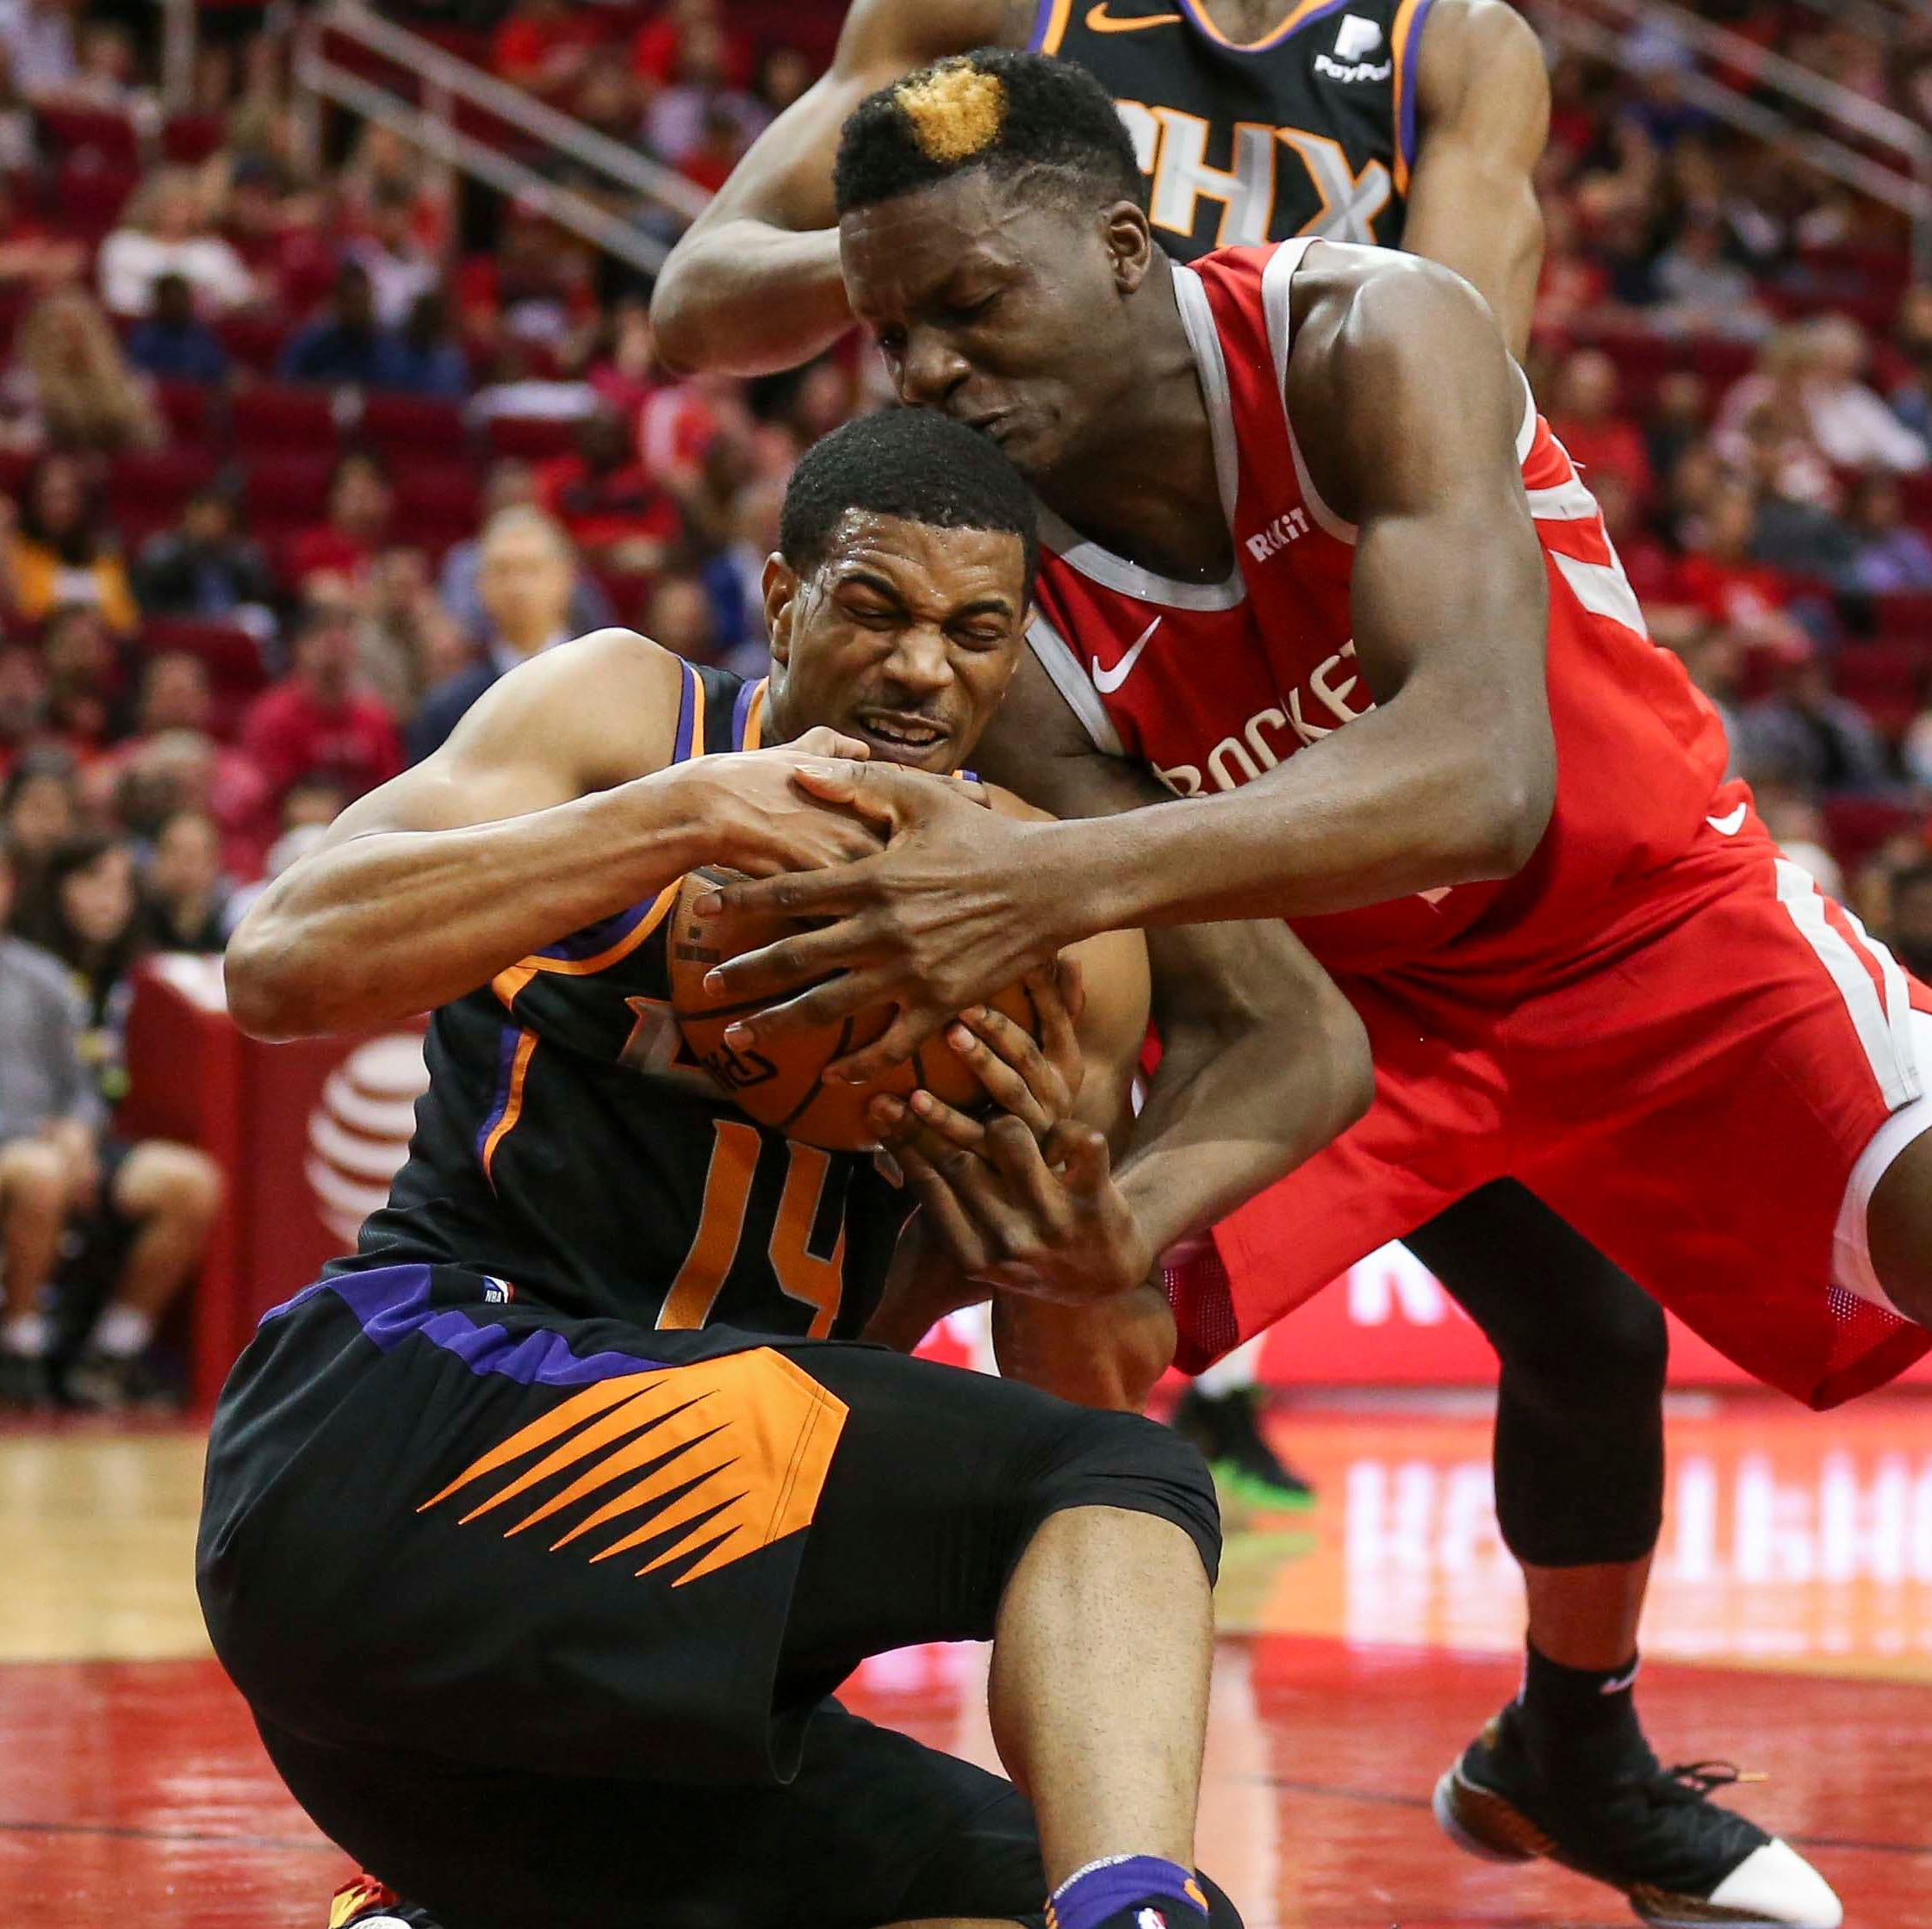 Focus remains on young players as Suns are routed by Rockets in record shooting performance